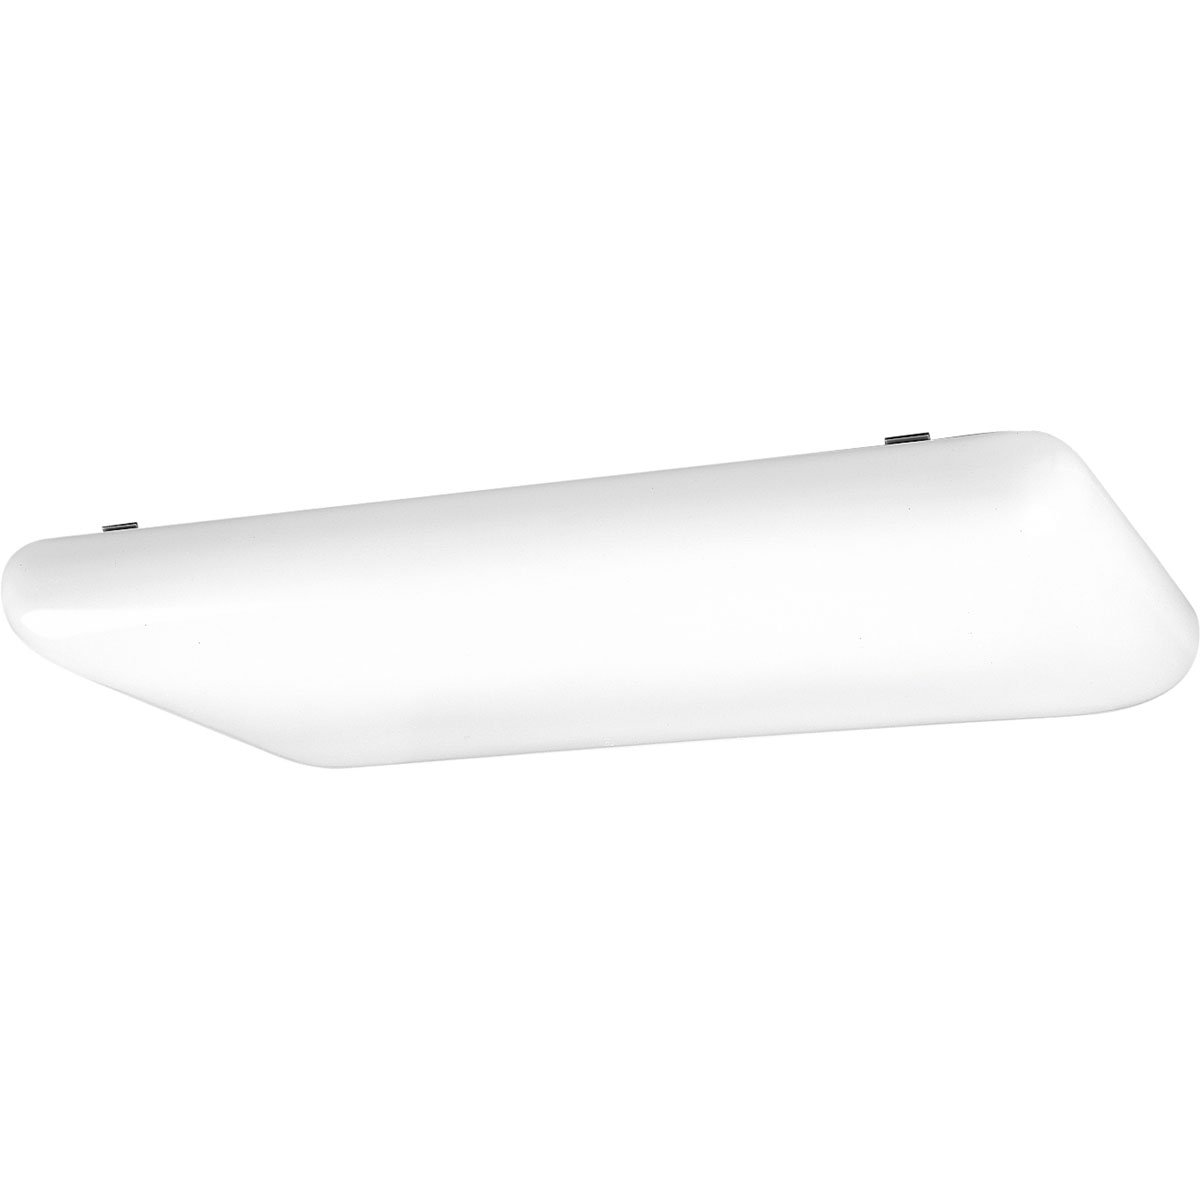 Progress Lighting P7278-60EB Contoured, Shallow White Acrylic Clouds Diffuser Suspended From White Chassis 120 Volt High Power Factor Electronic Ballast, White